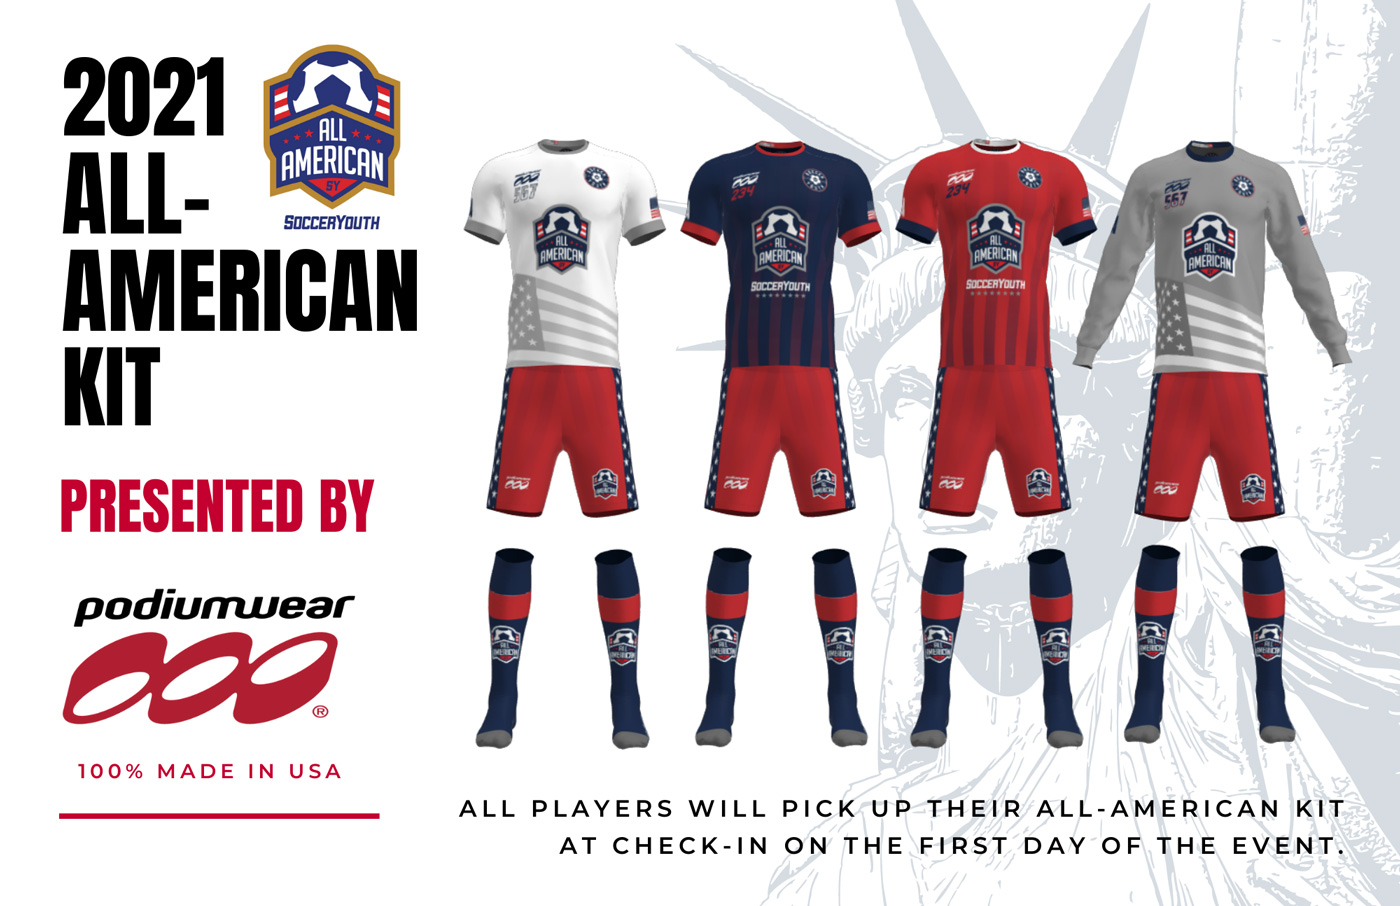 Soccer Youth 2021 All-American Kit Presented By Podiumwear. 100% Made in the USA.  All players will pick up their All-American Kit at check-in on the first day of the event.